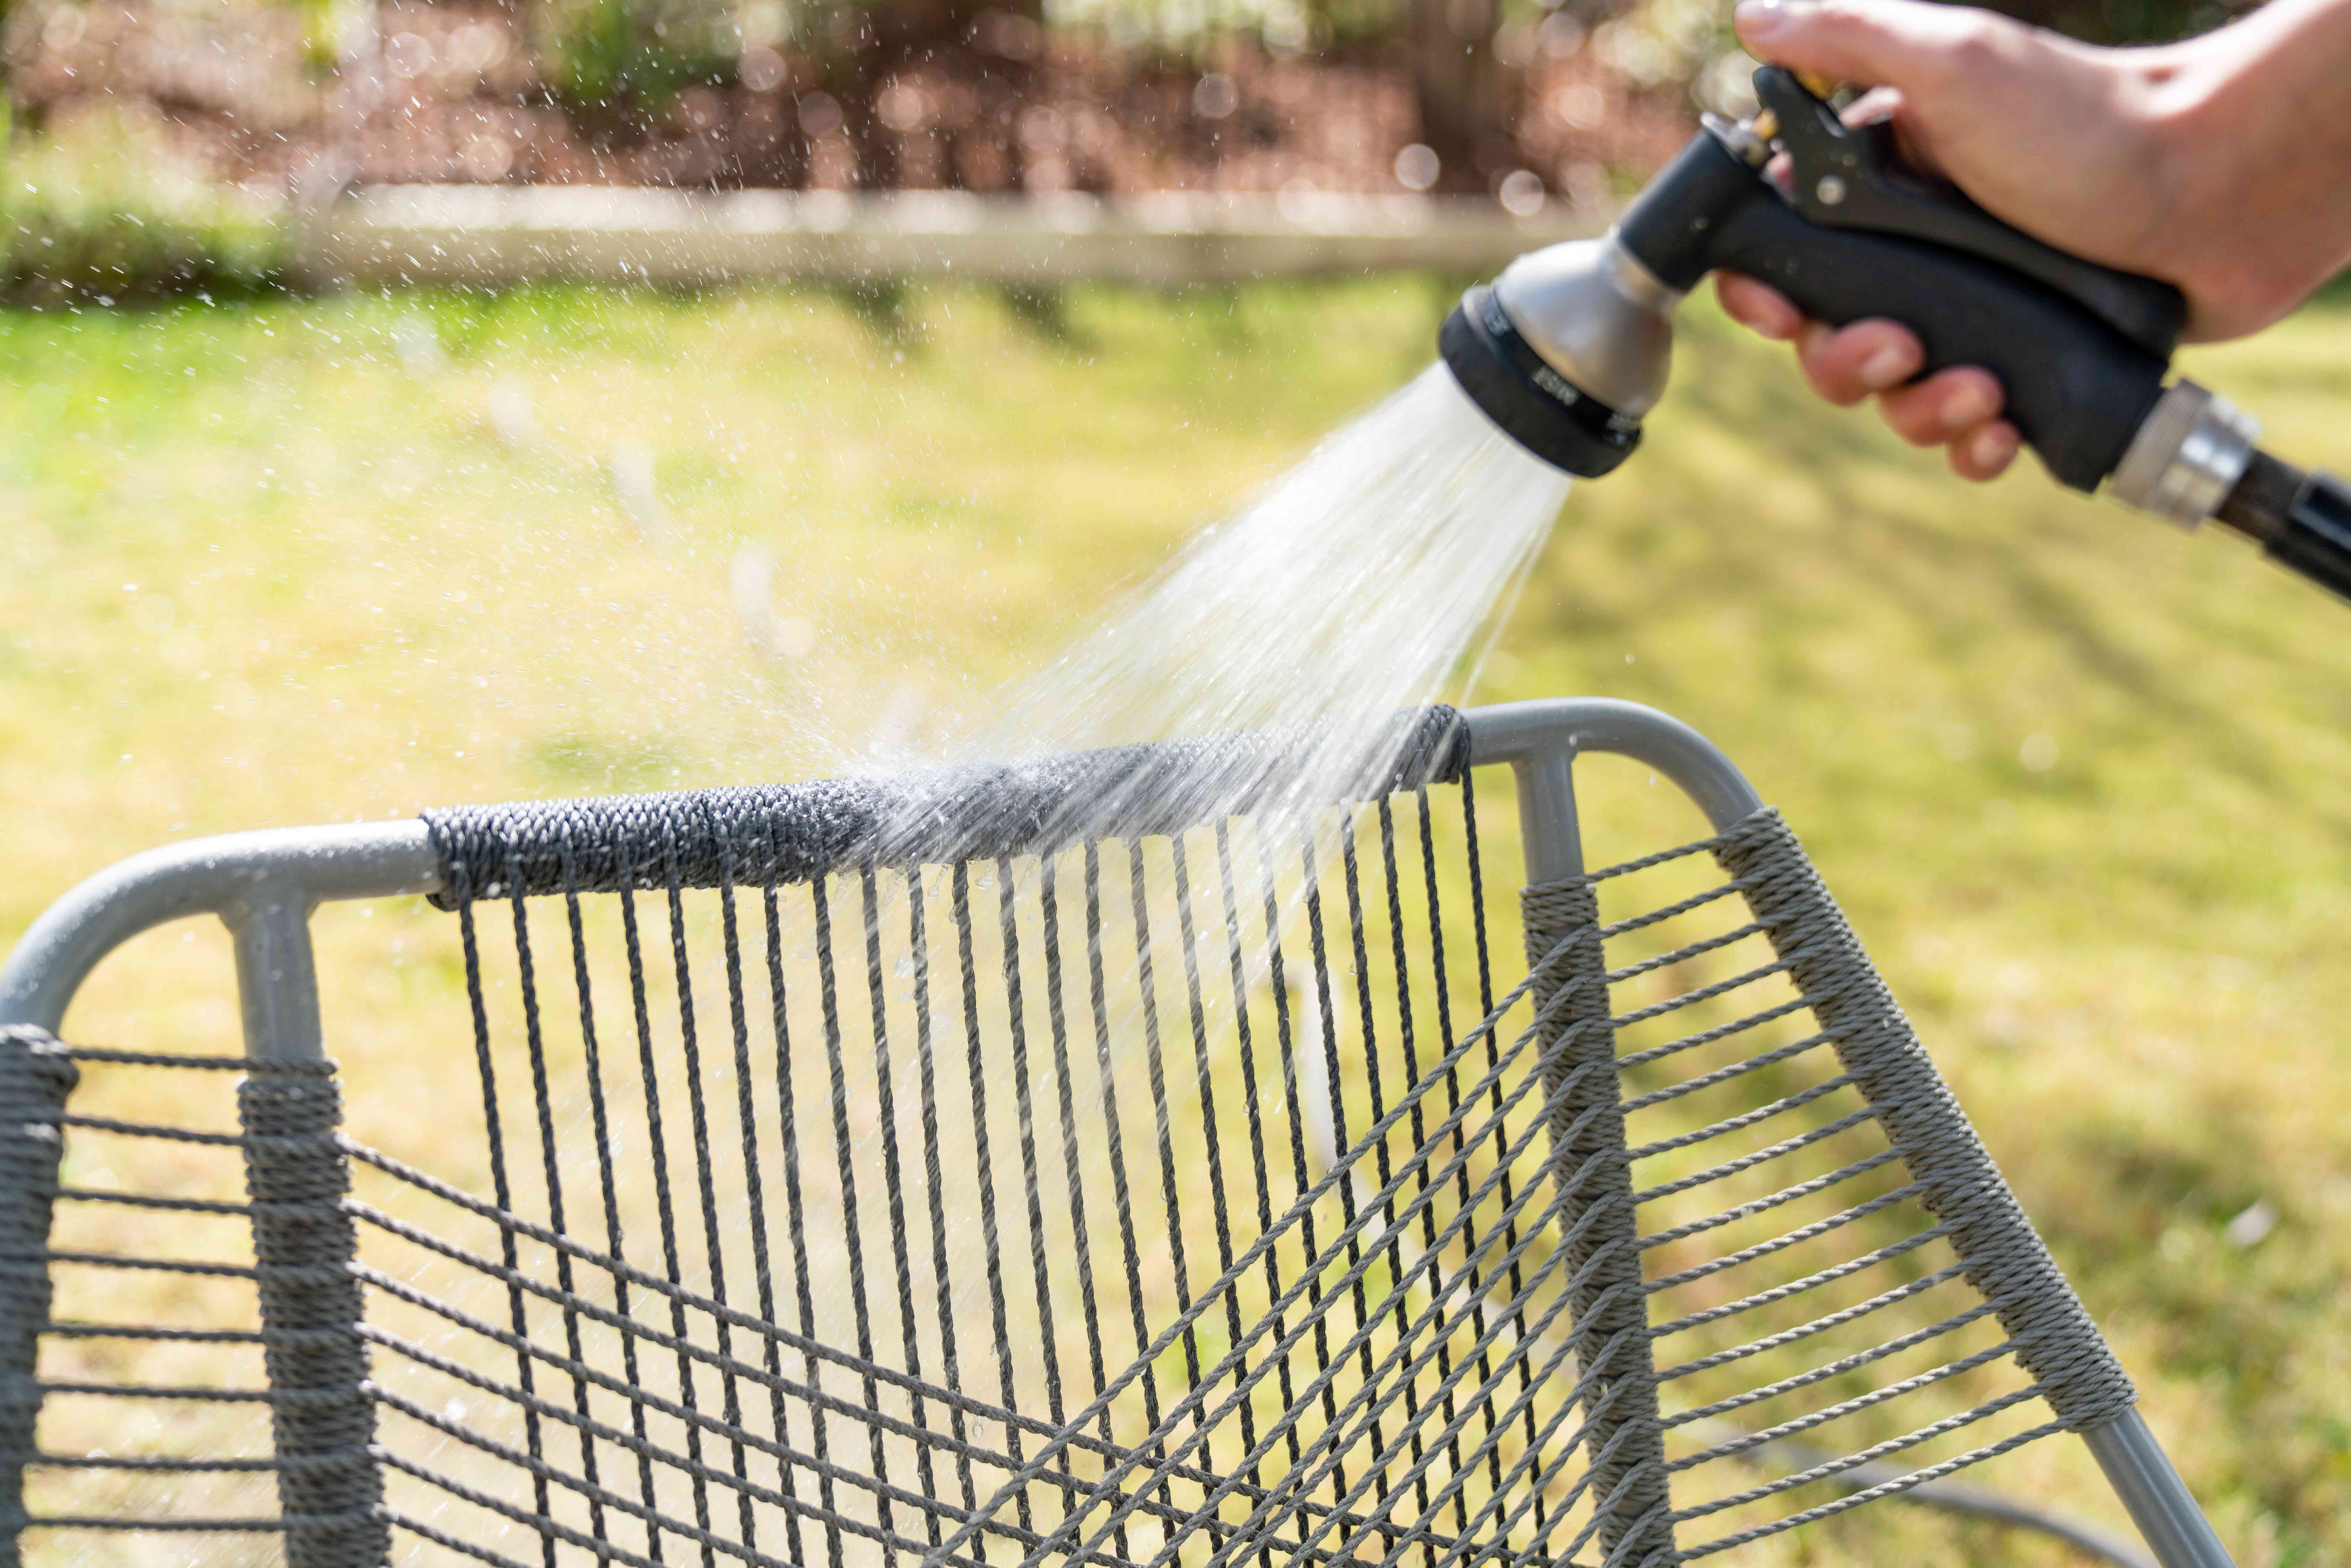 Hose spraying water on outdoor fabric to rinse off bird poop stain